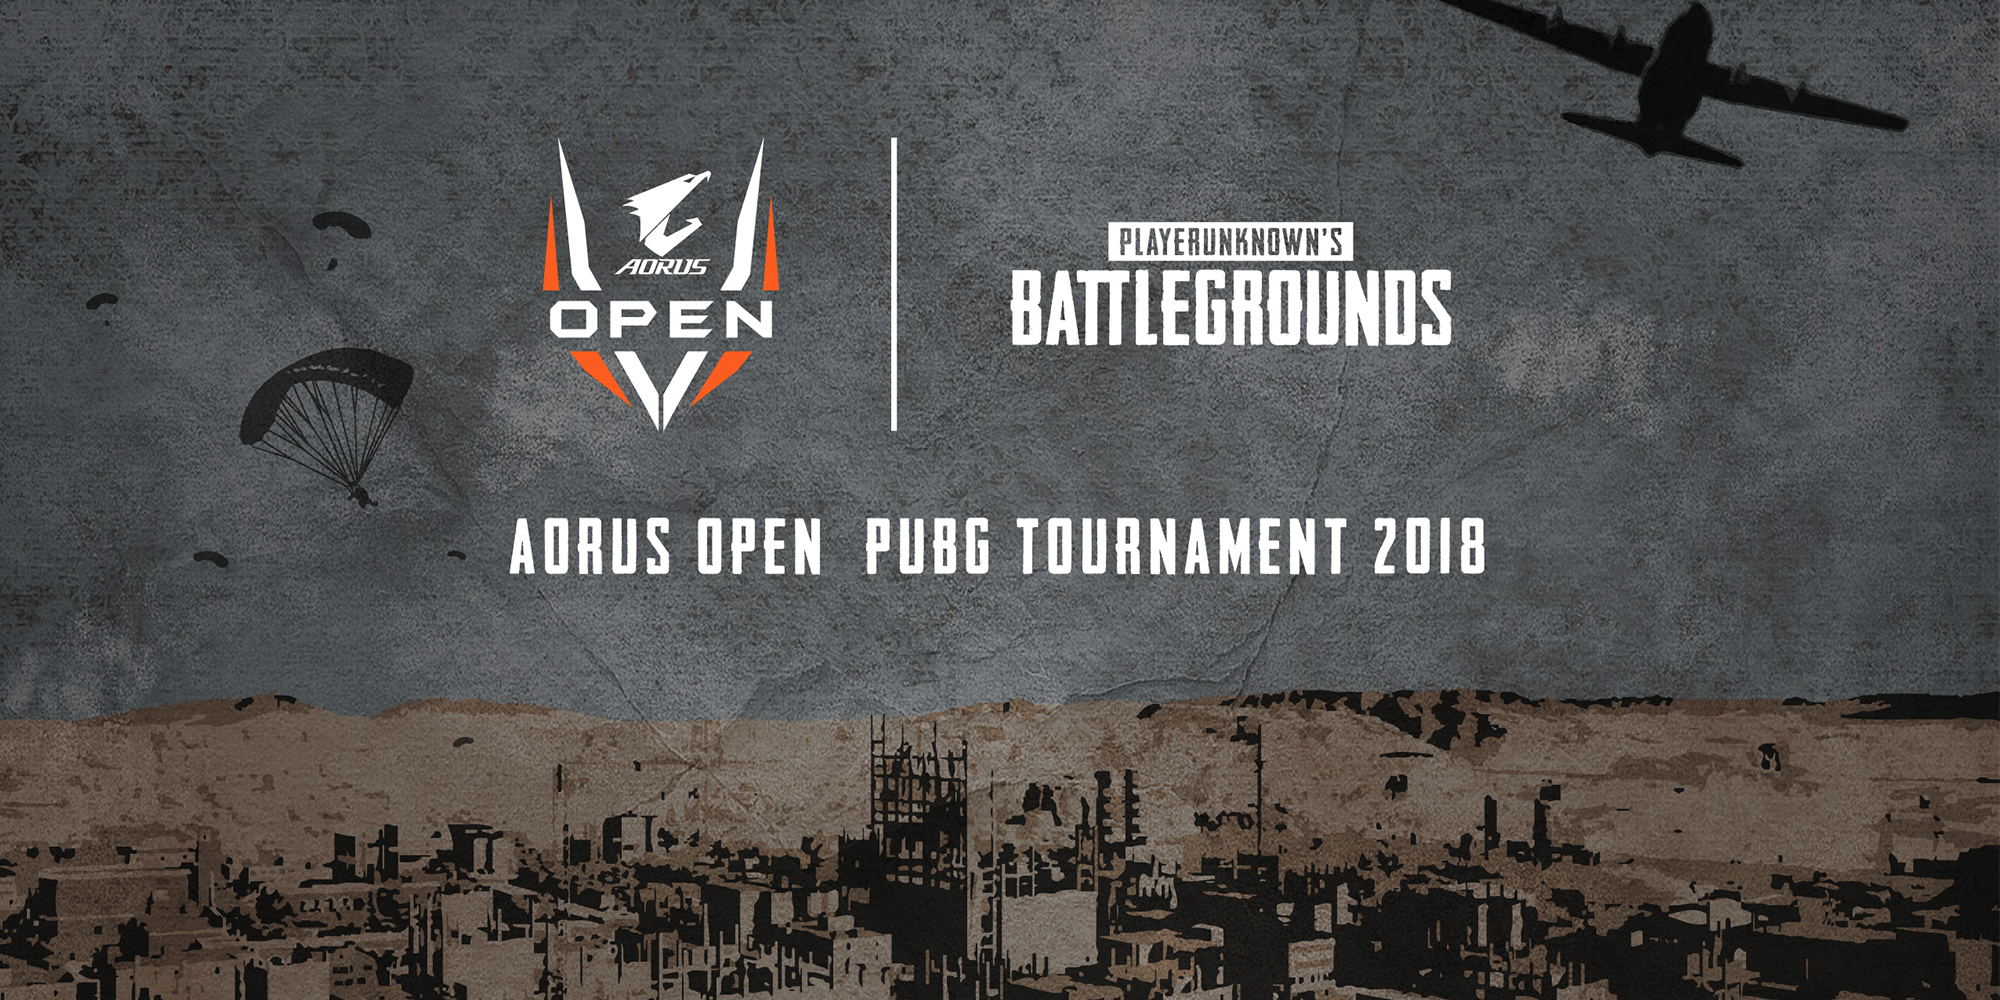 AORUS Open PUBG Tournament Registration Begins for U.S. Teams